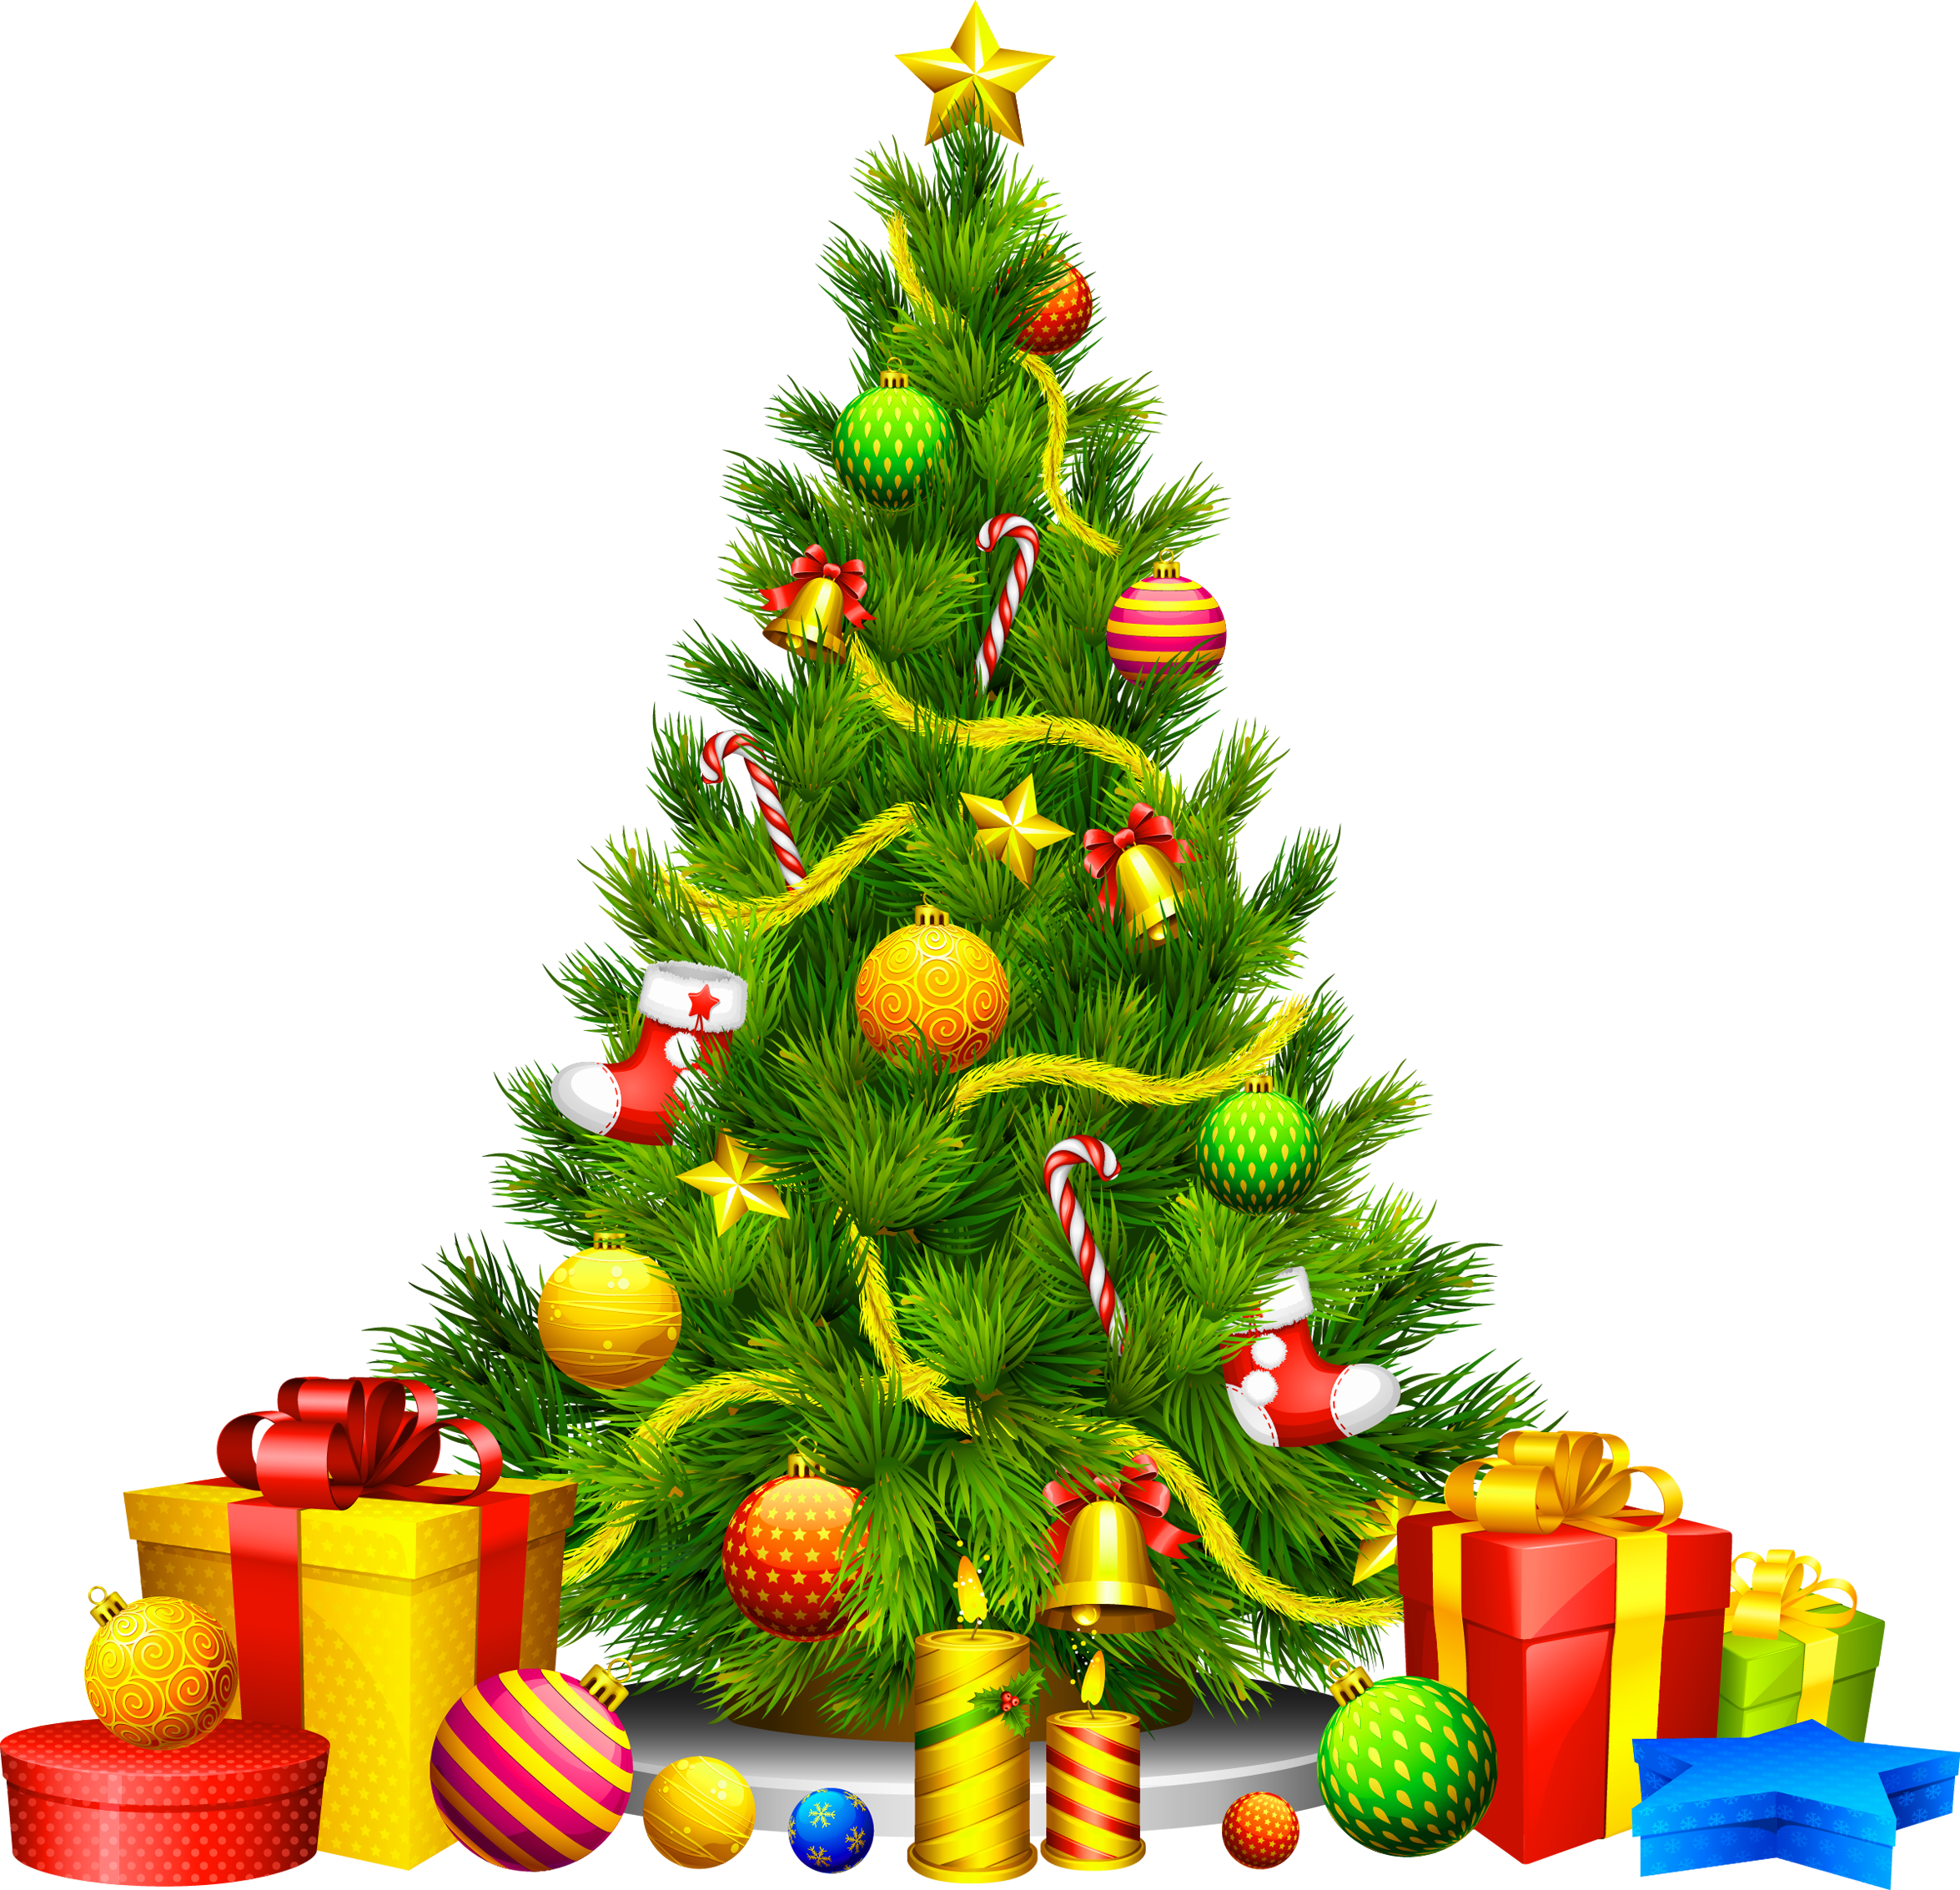 Clip Art Clipart Christmas Tree christmas tree clip art png clipartfox fir image